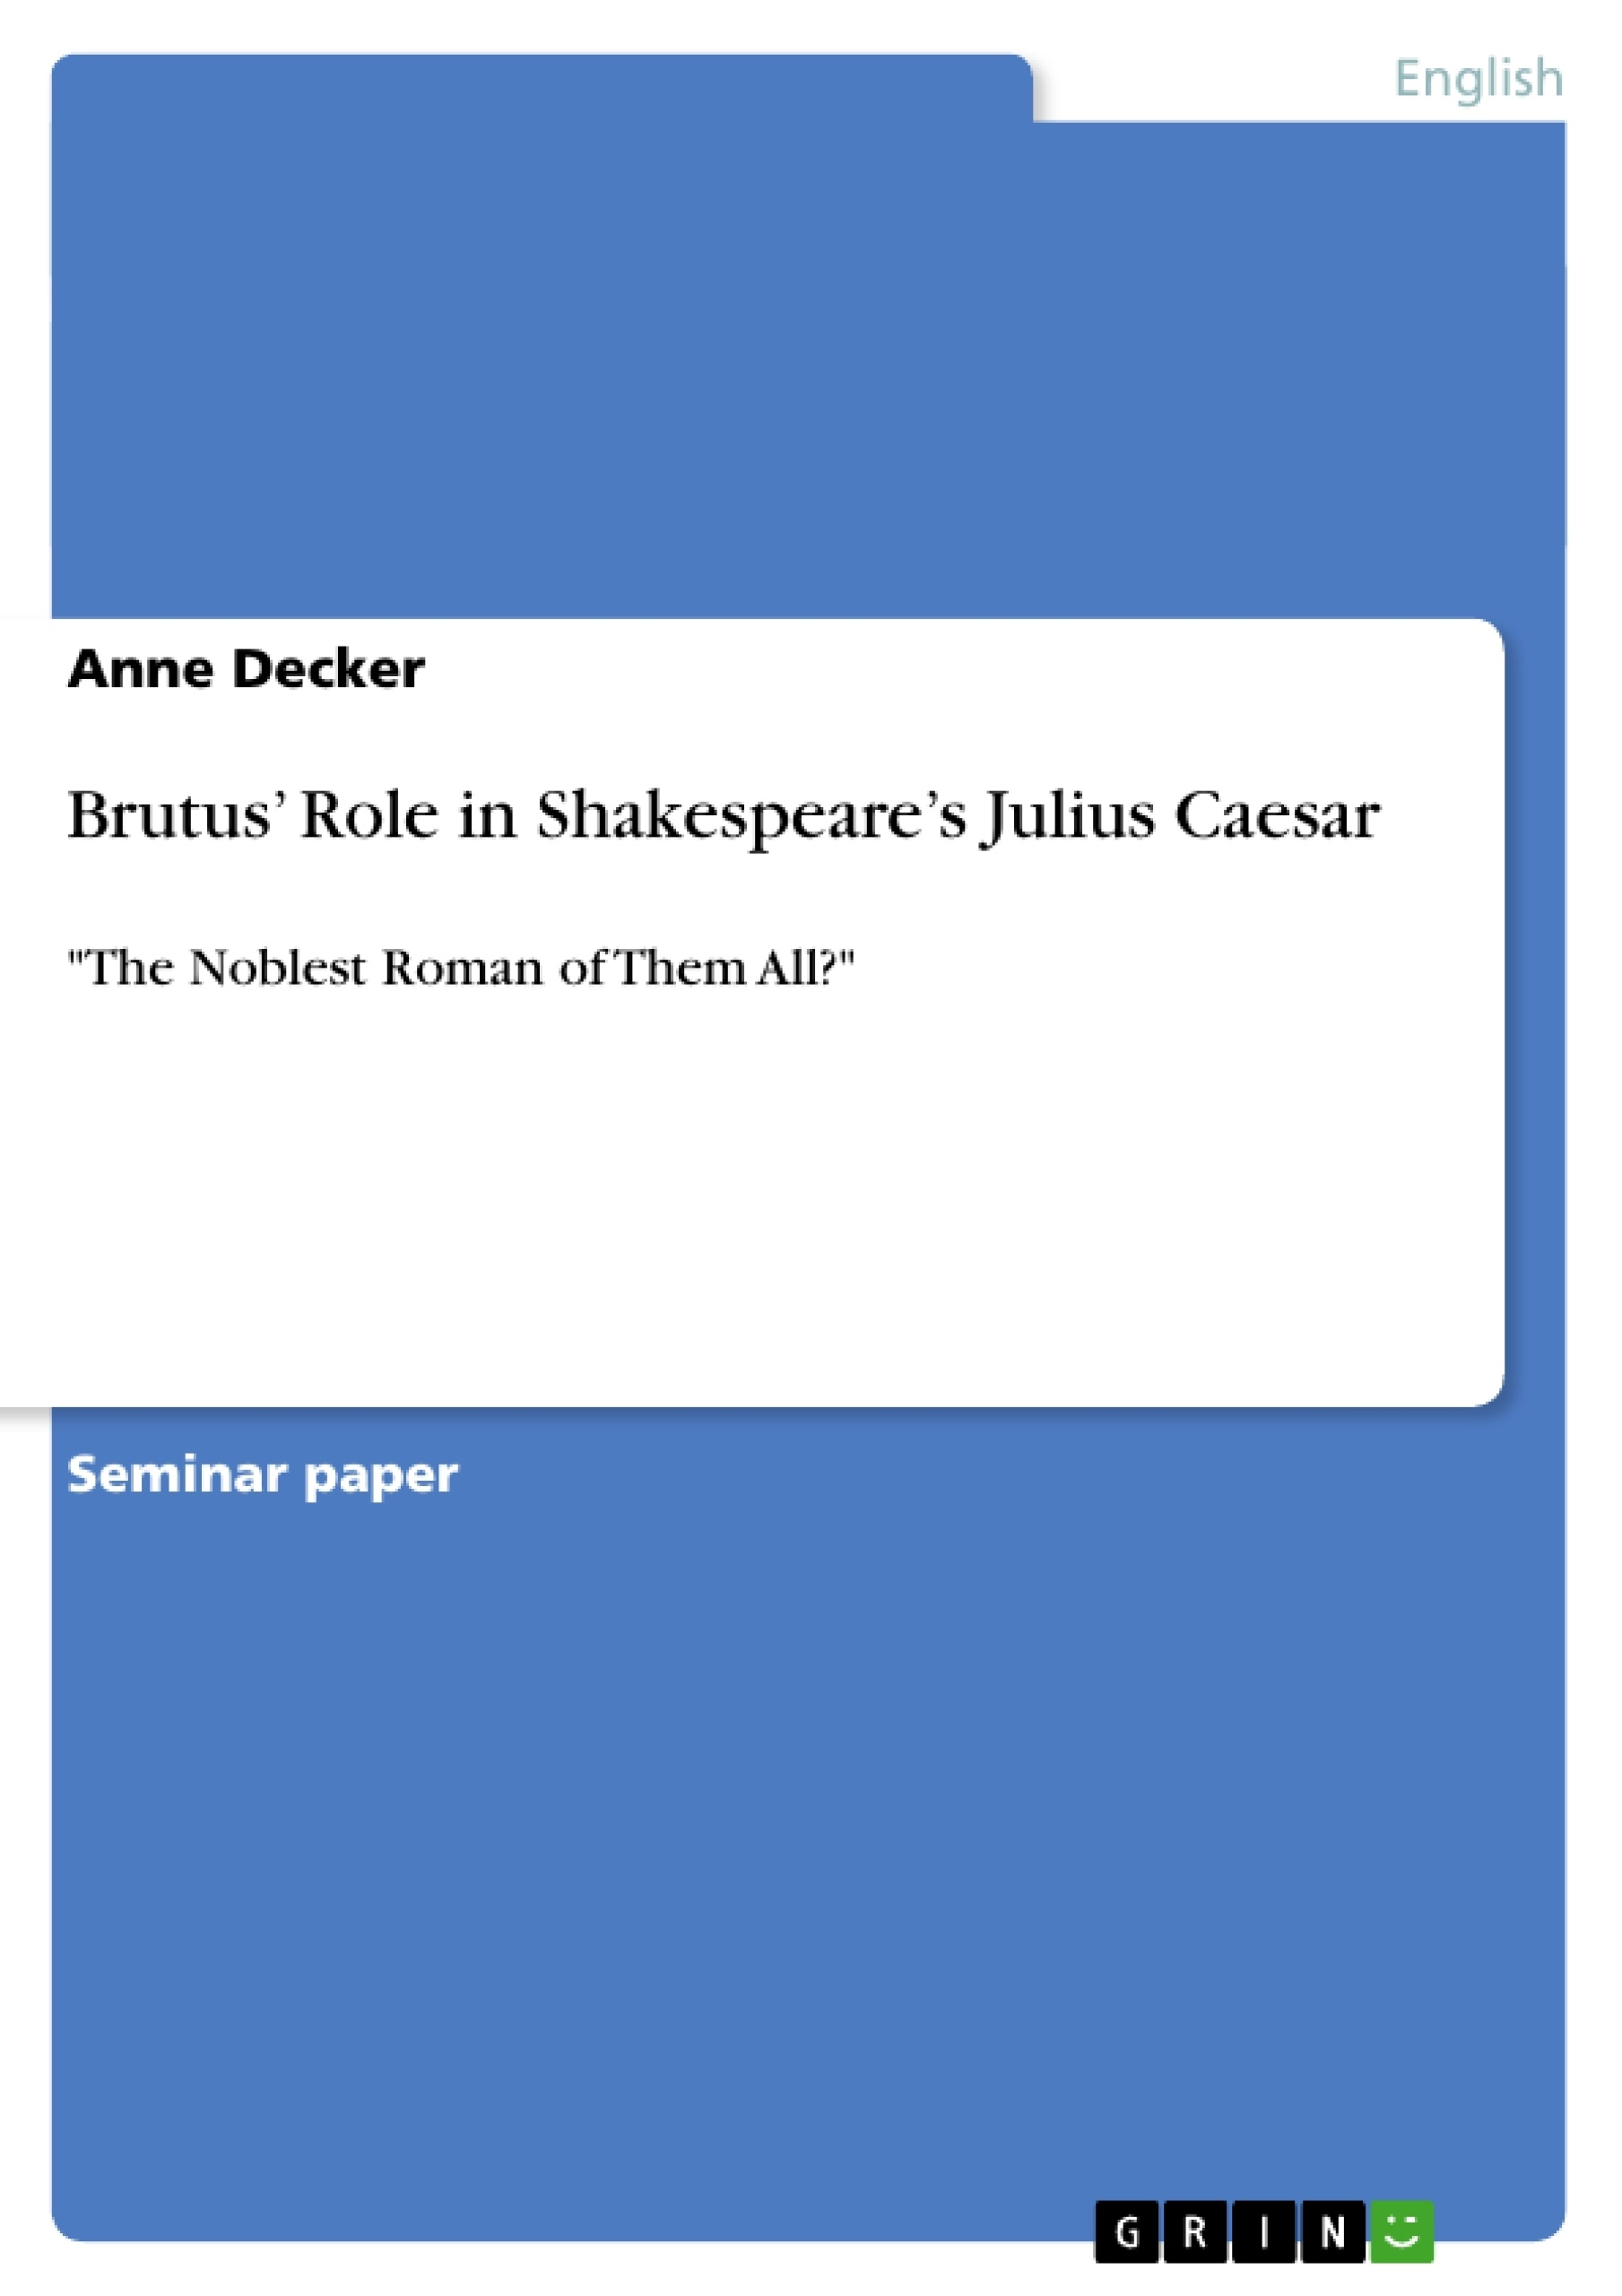 the tragedy of julius caesar essay julius caesar final exam julius  brutus role in shakespeare s julius caesar publish your brutus role in shakespeare s julius caesar